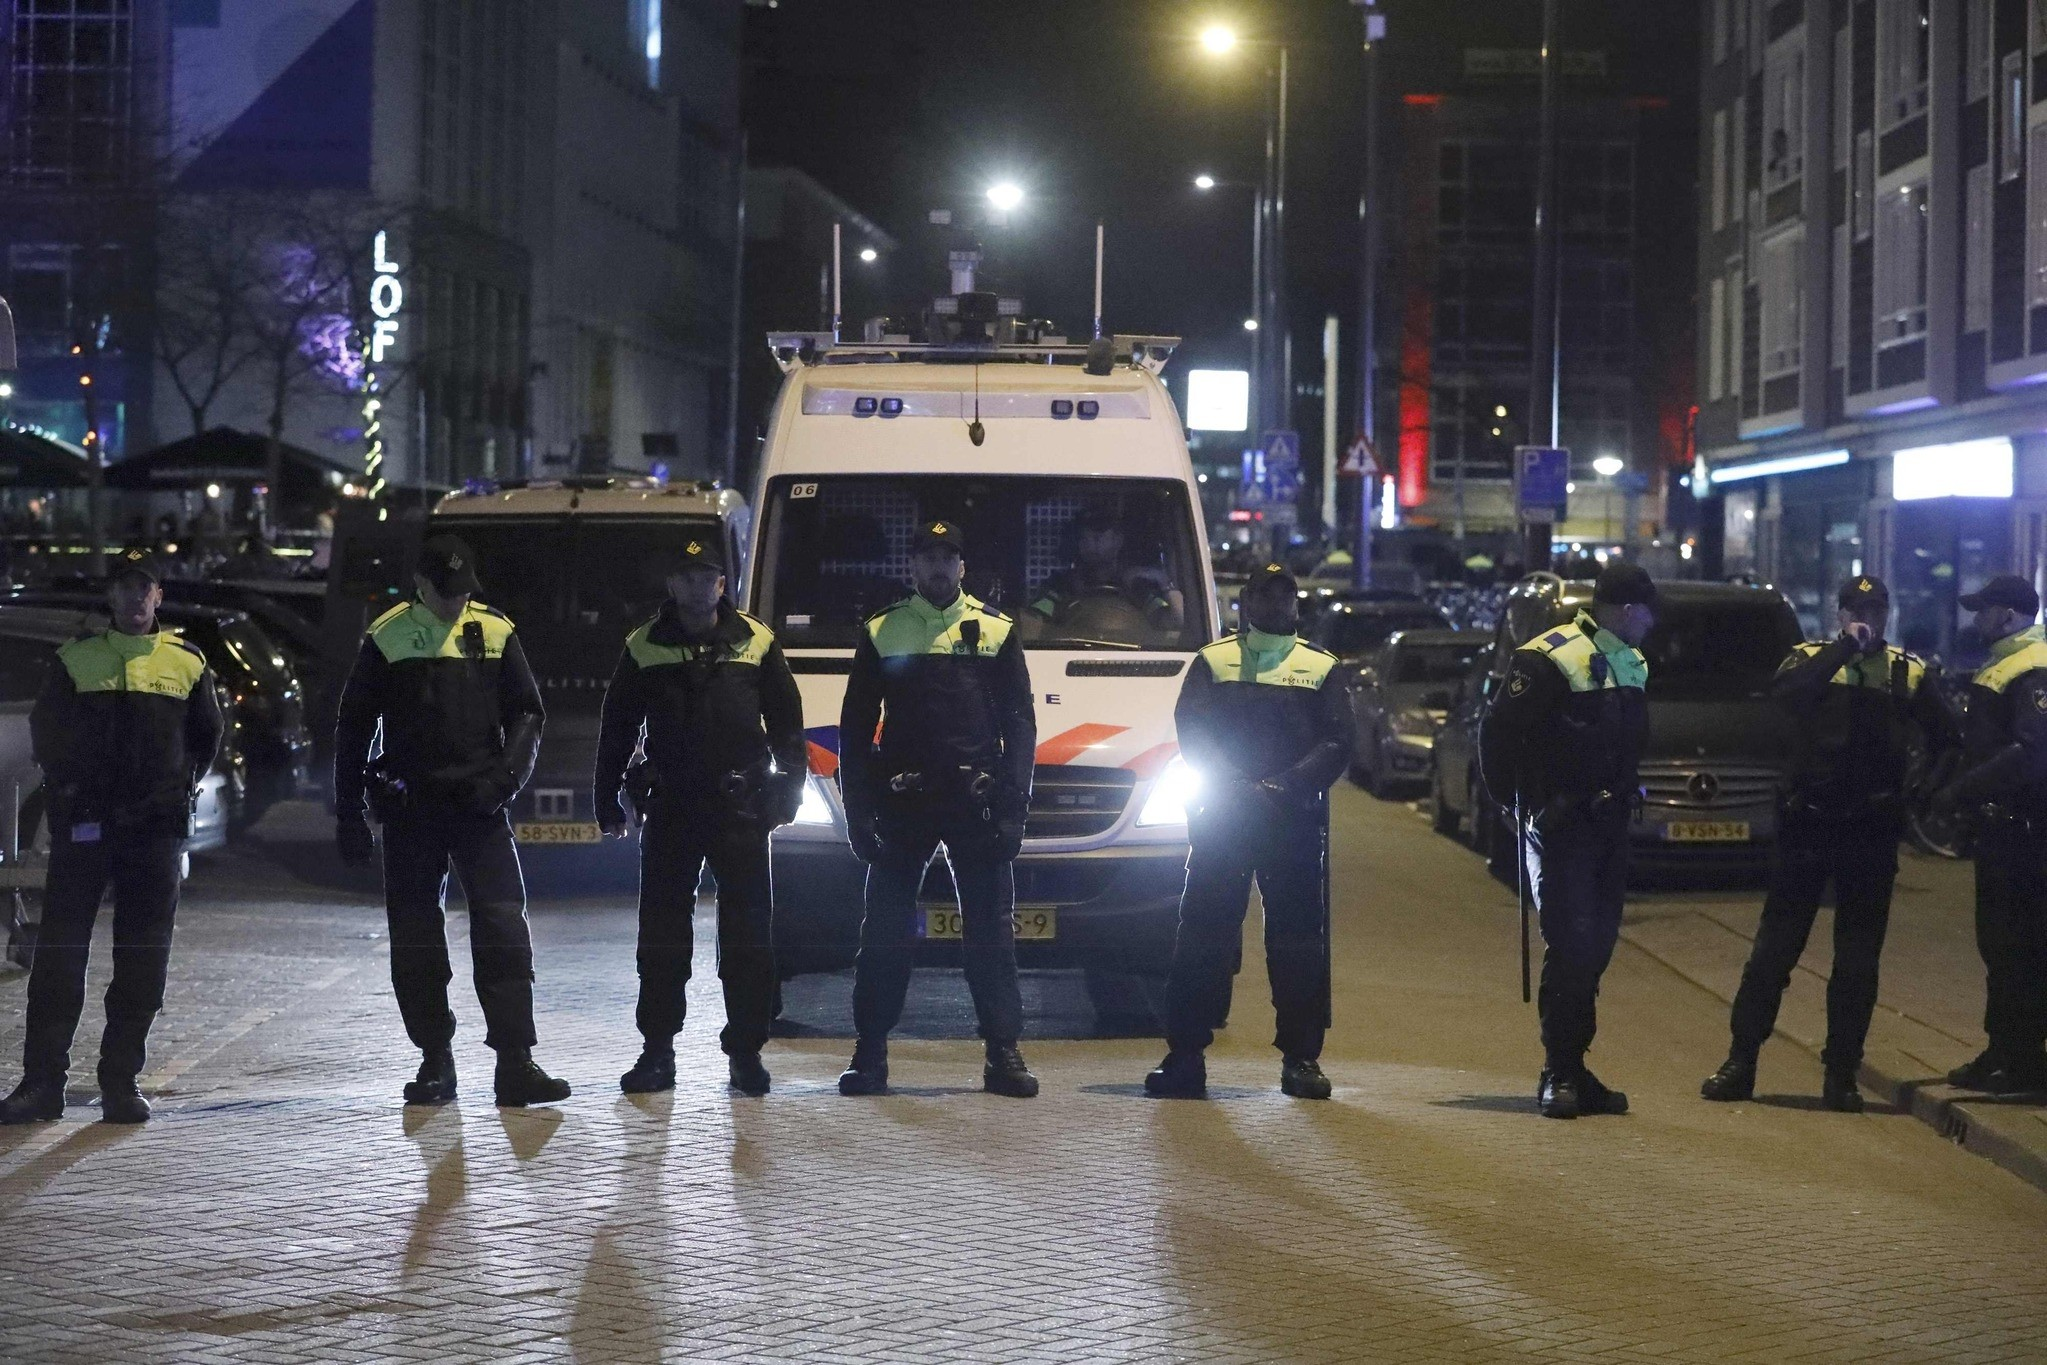 Police block off the street outside the Turkish consulate in Rotterdam where a crowd gathered to welcome the Turkish Family Minister Fatma Betul Sayan Kaya.